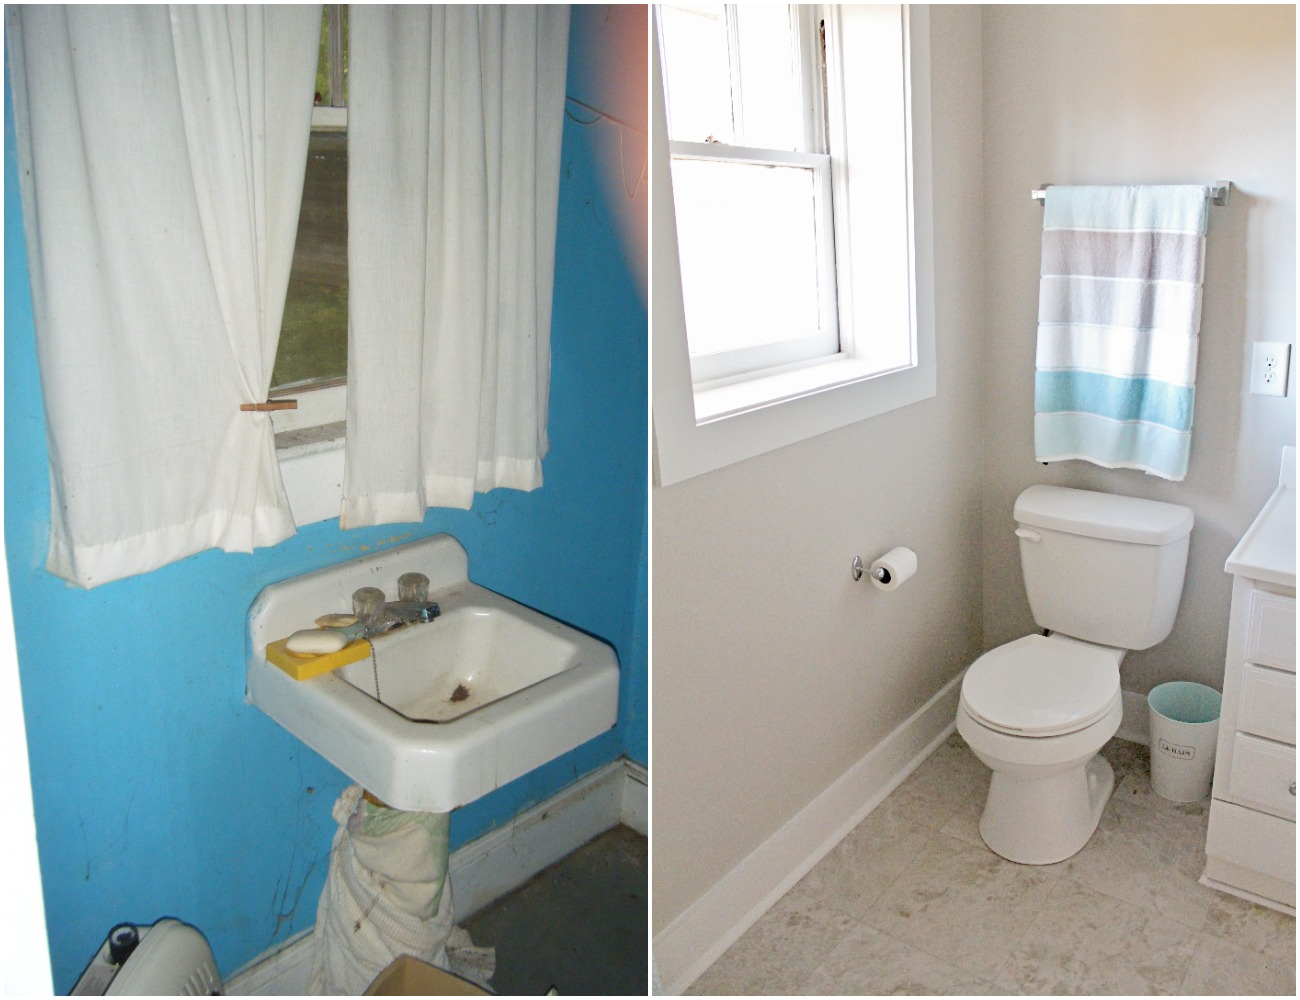 Elizabeth Burns Design  Budget-Friendly Fixer Upper Farmhouse Before and After House Flip - DIY Small Bathroom with Storage and Subway Tile - Sherwin Williams Agreeable Gray (1).jpg